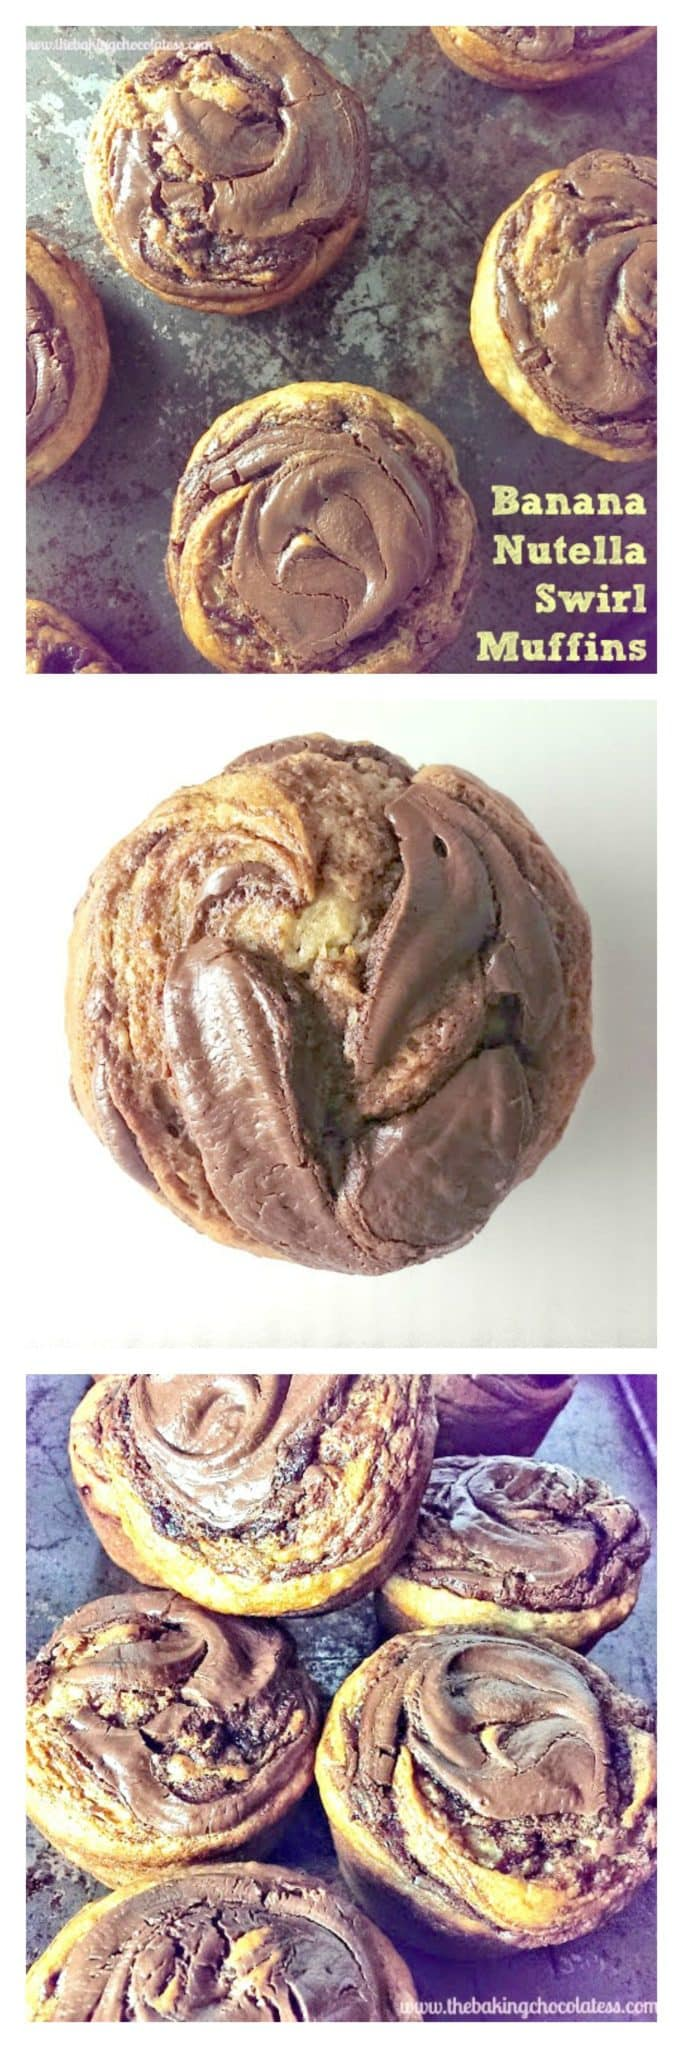 \'Awesome\' Banana Nutella Swirl Muffins!  {Choose GF or Regular}